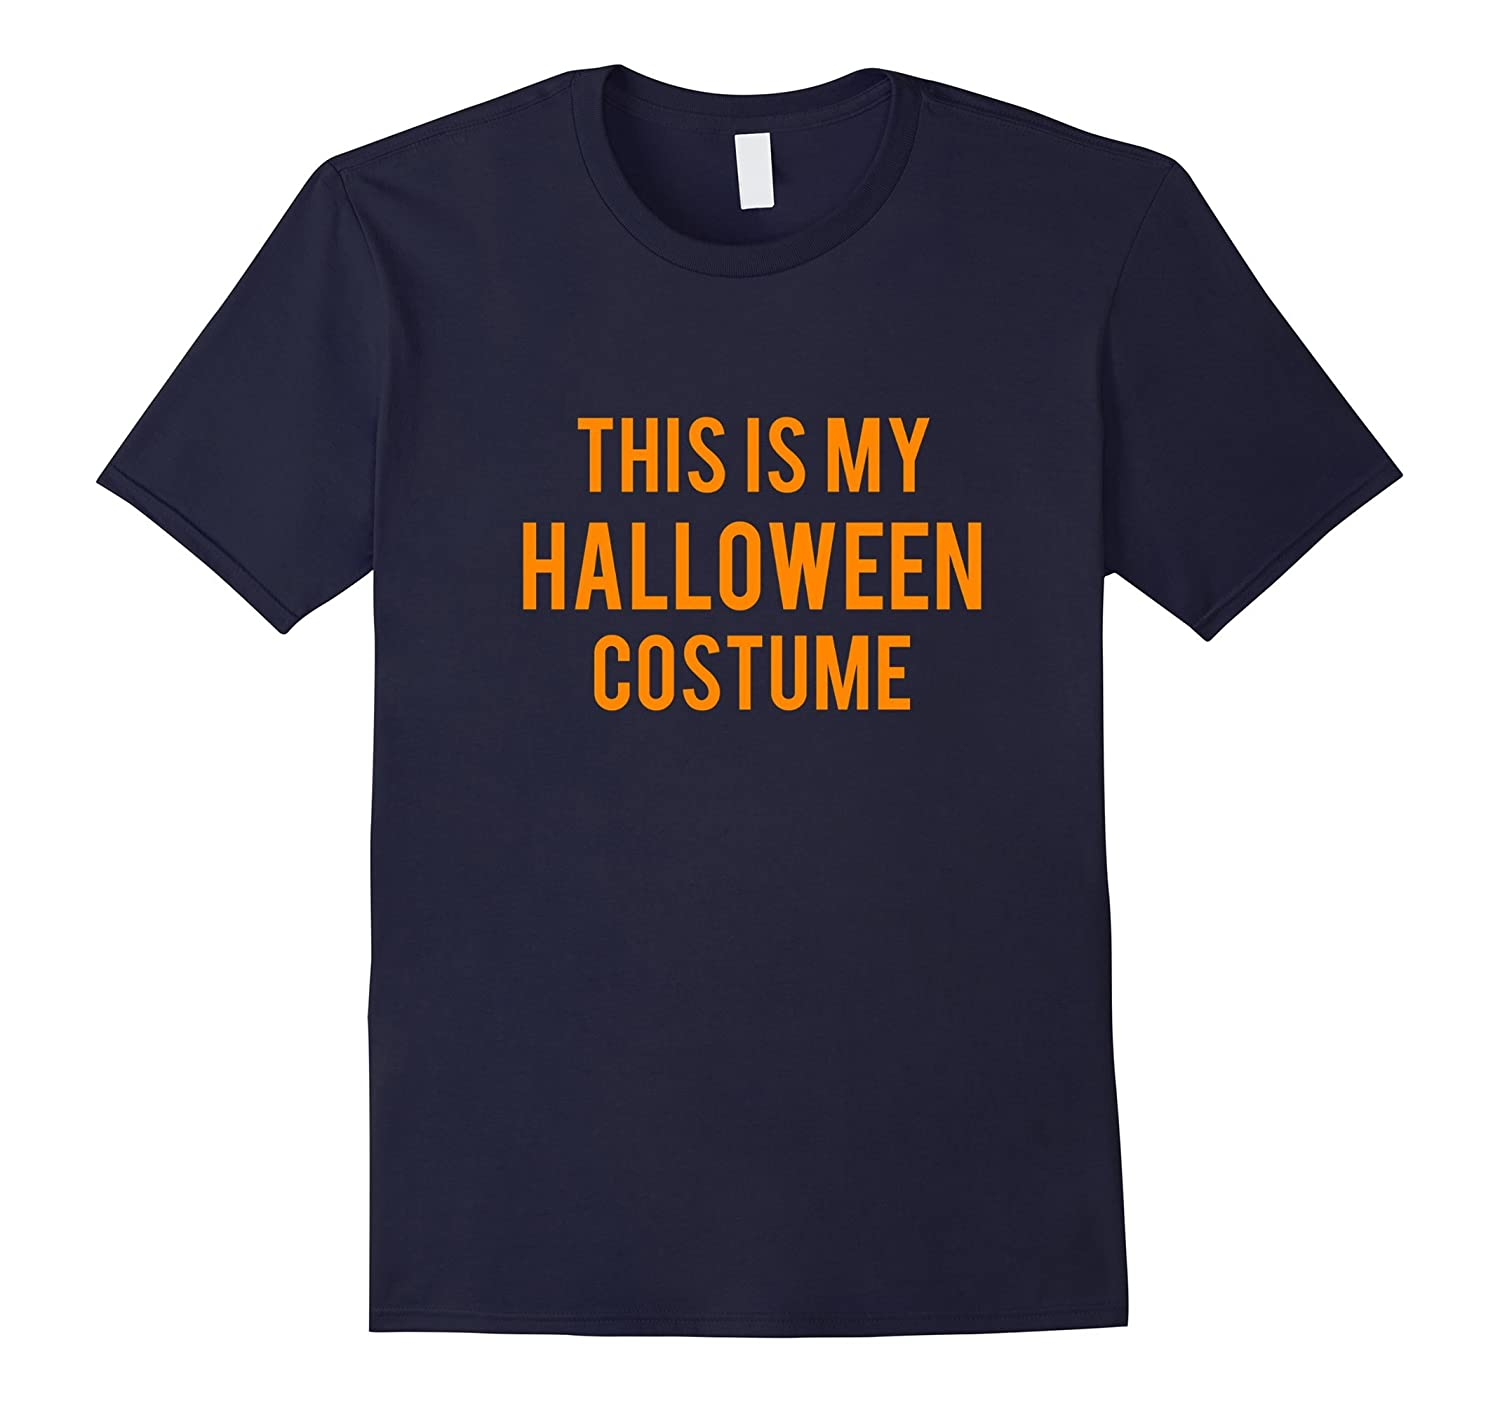 OFFICIAL This Is My Halloween Costume T-Shirt Kids Men Women-FL